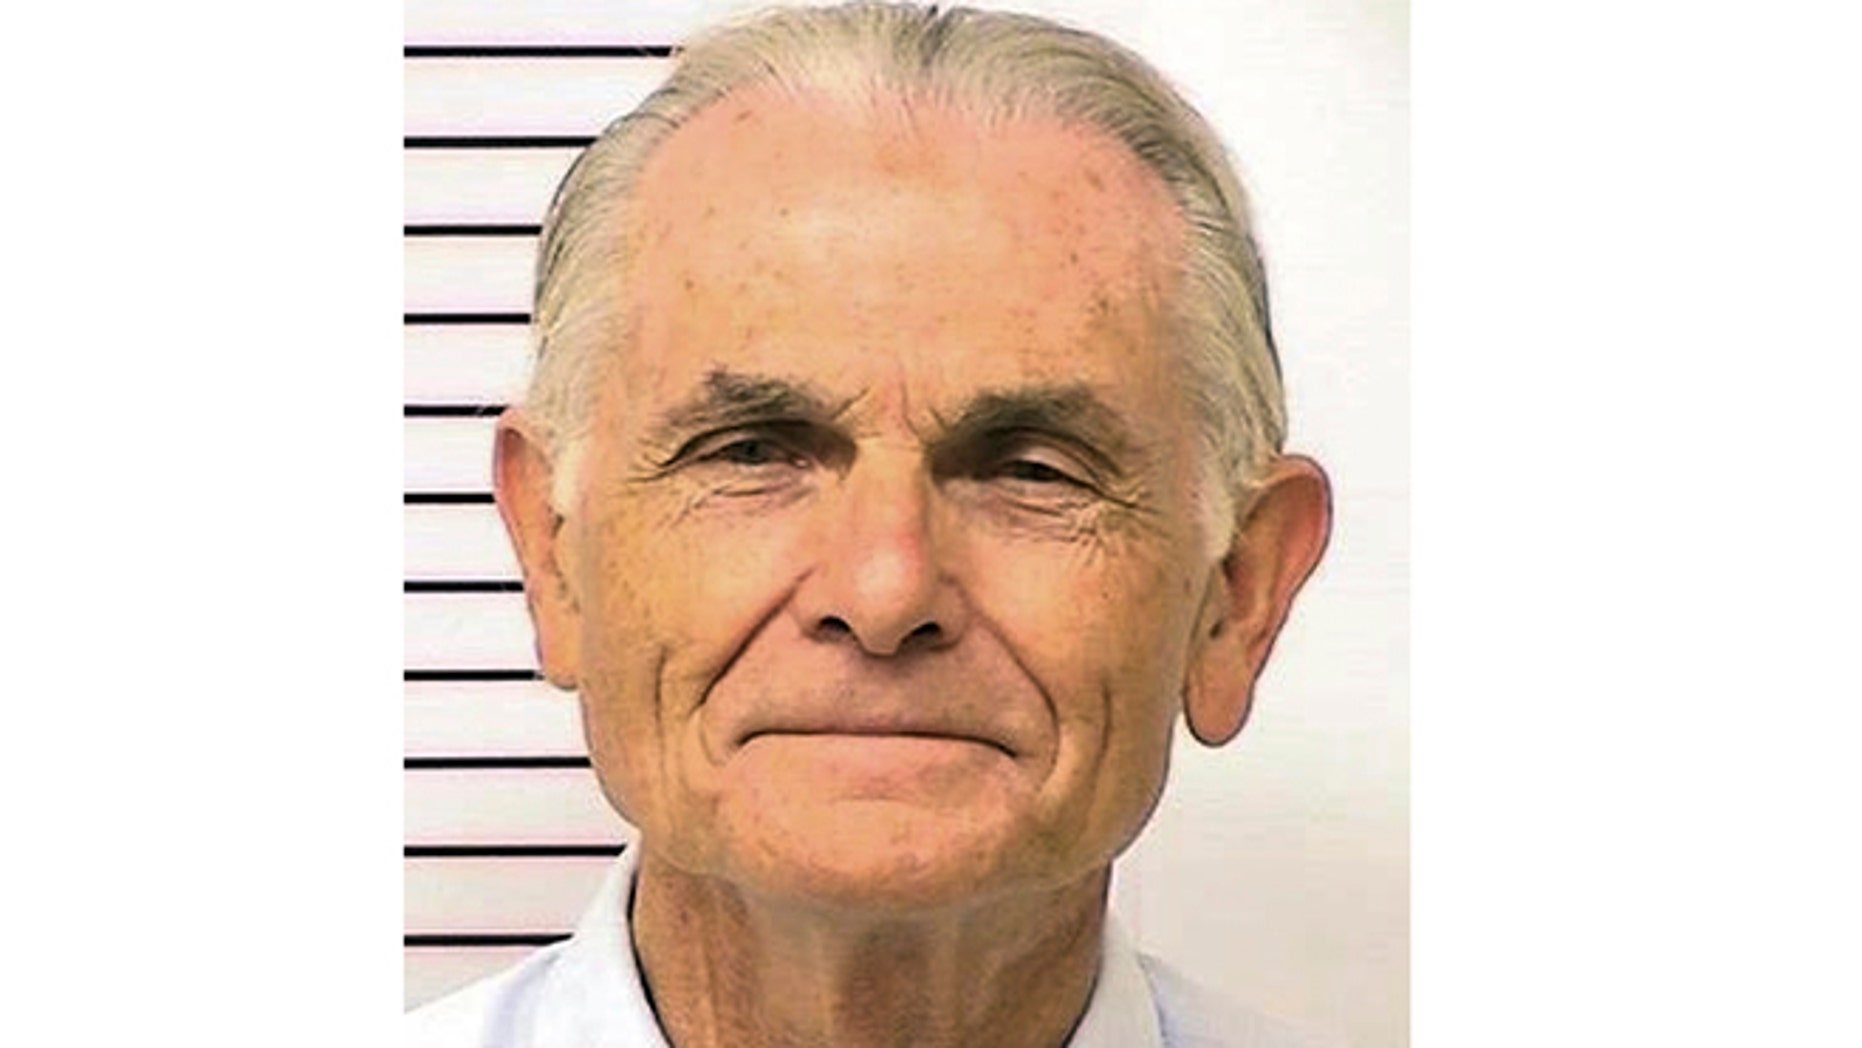 Jan. 29, 2013, This photo provided by the California Department of Corrections shows Bruce Davis.